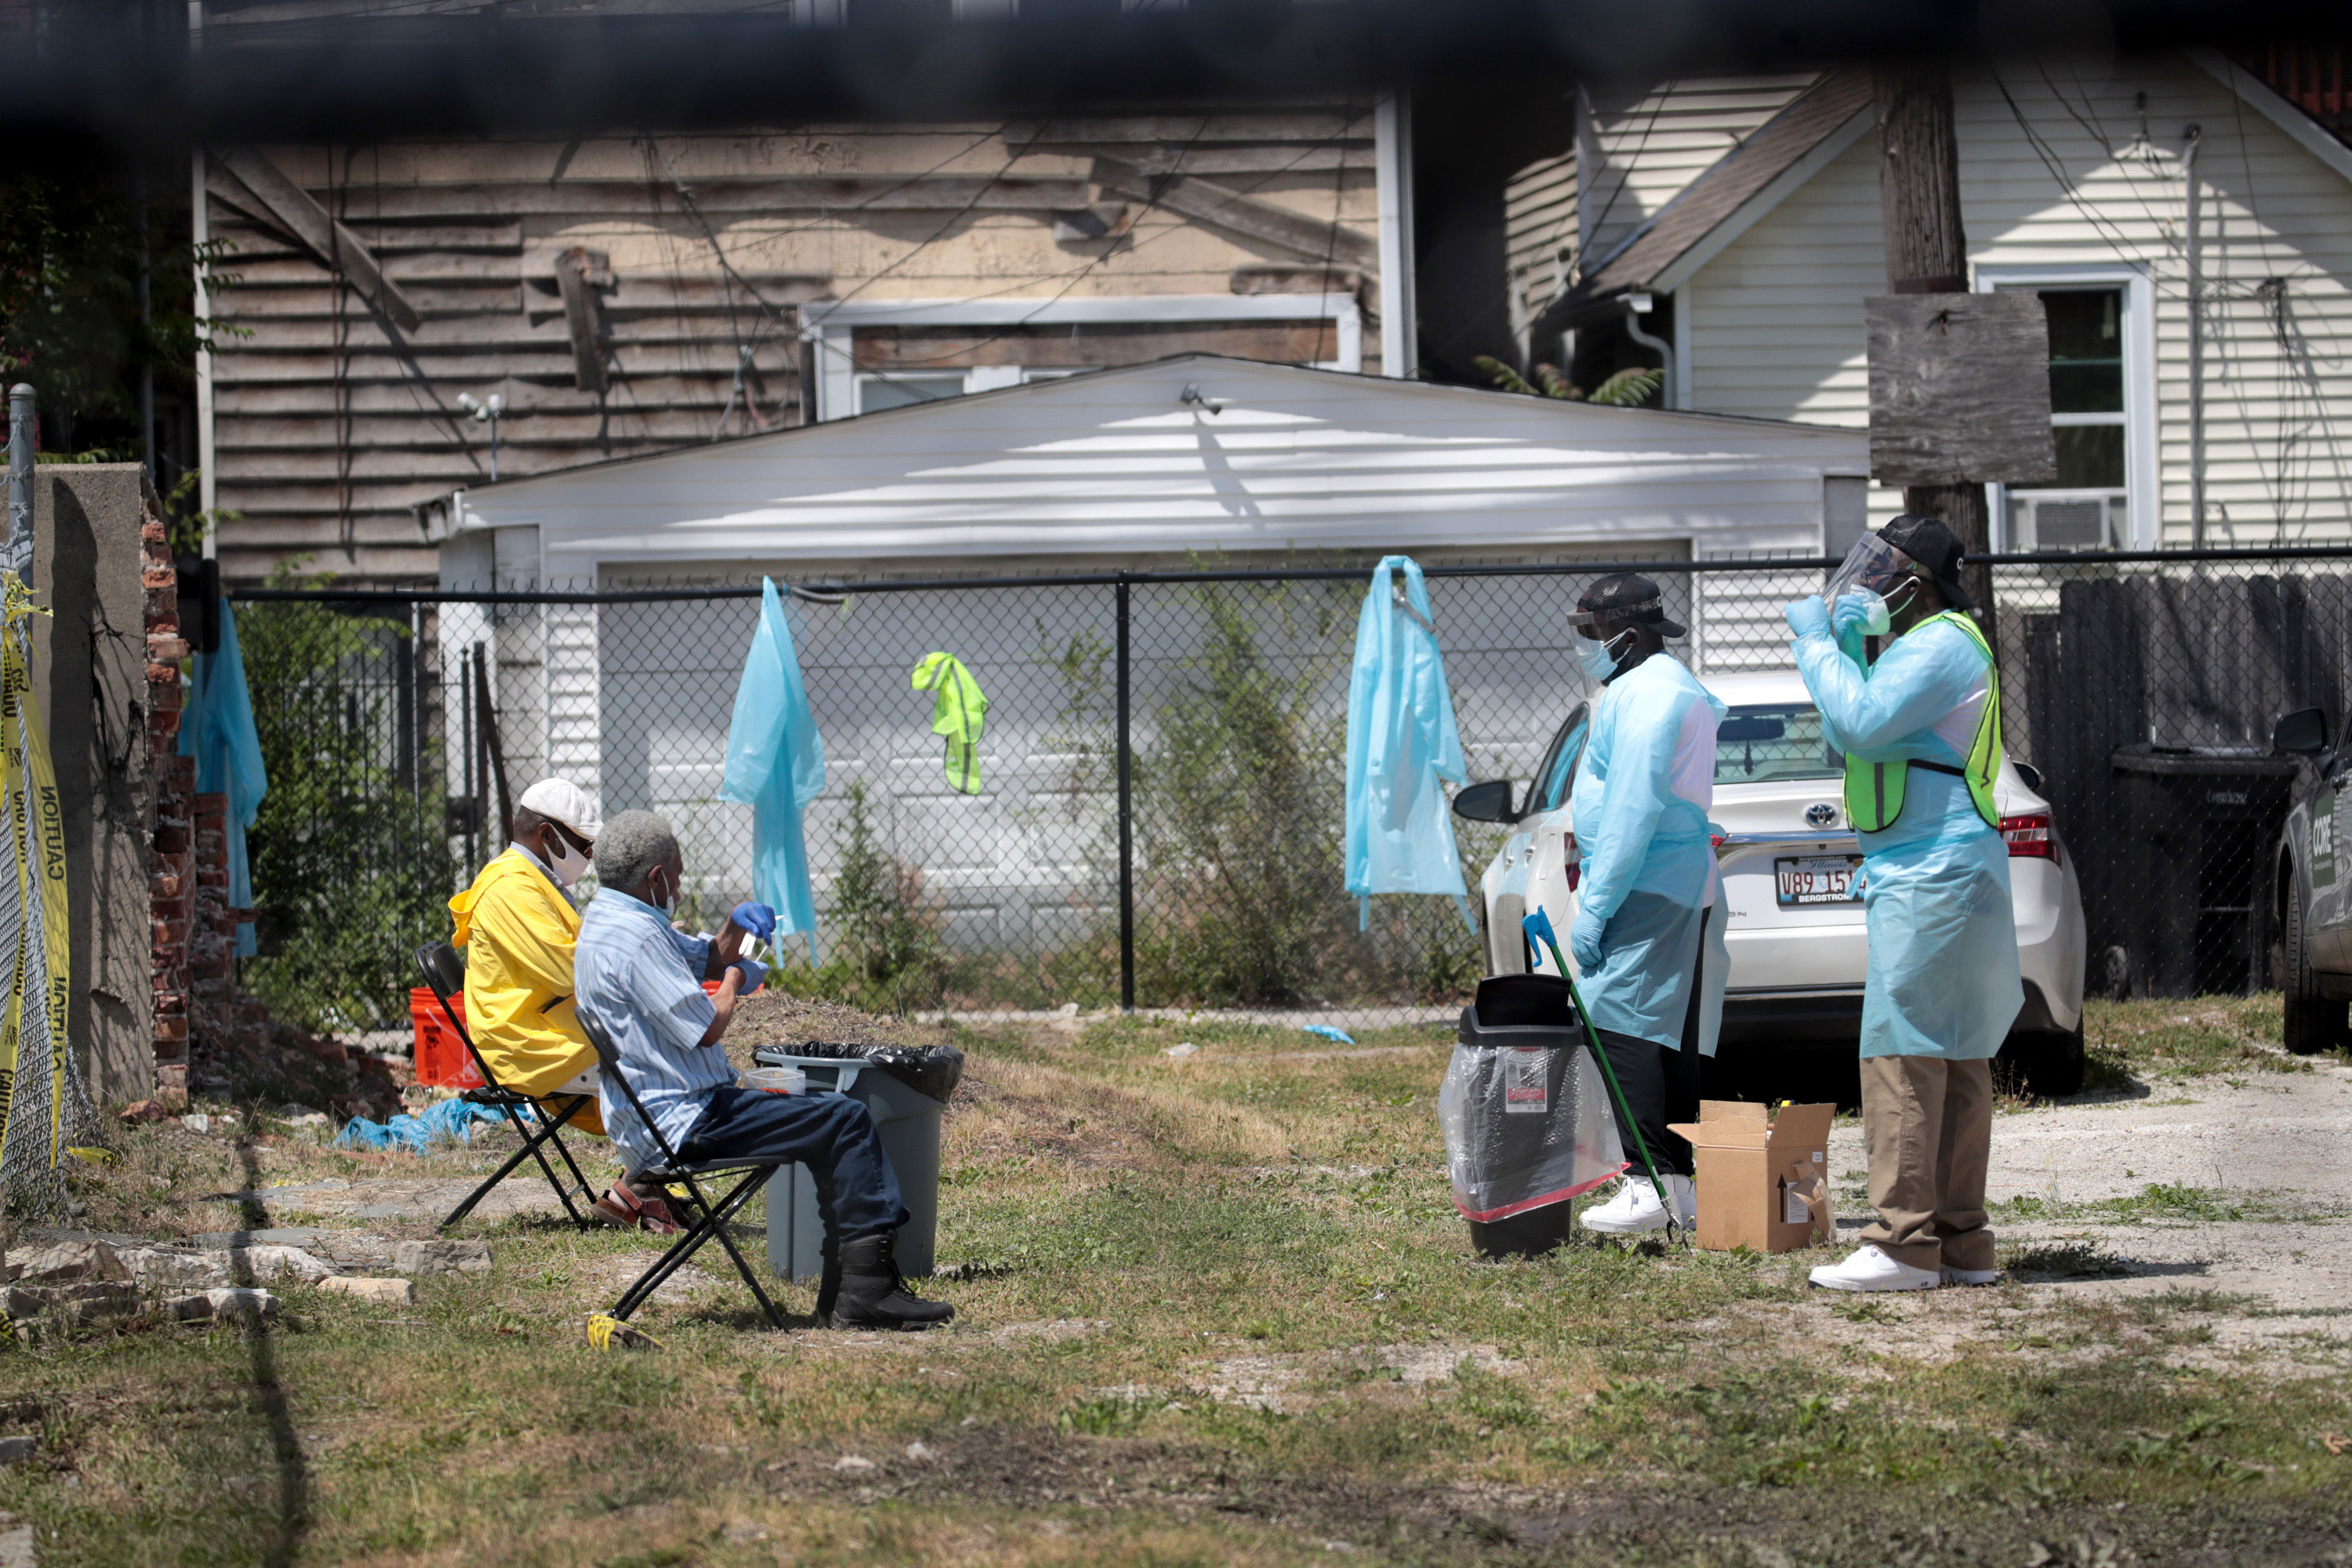 Workers talk residents through a Covid-19 self-administered test on June 23 at a mobile testing site set up on a vacant lot in Chicago's Austin neighborhood.